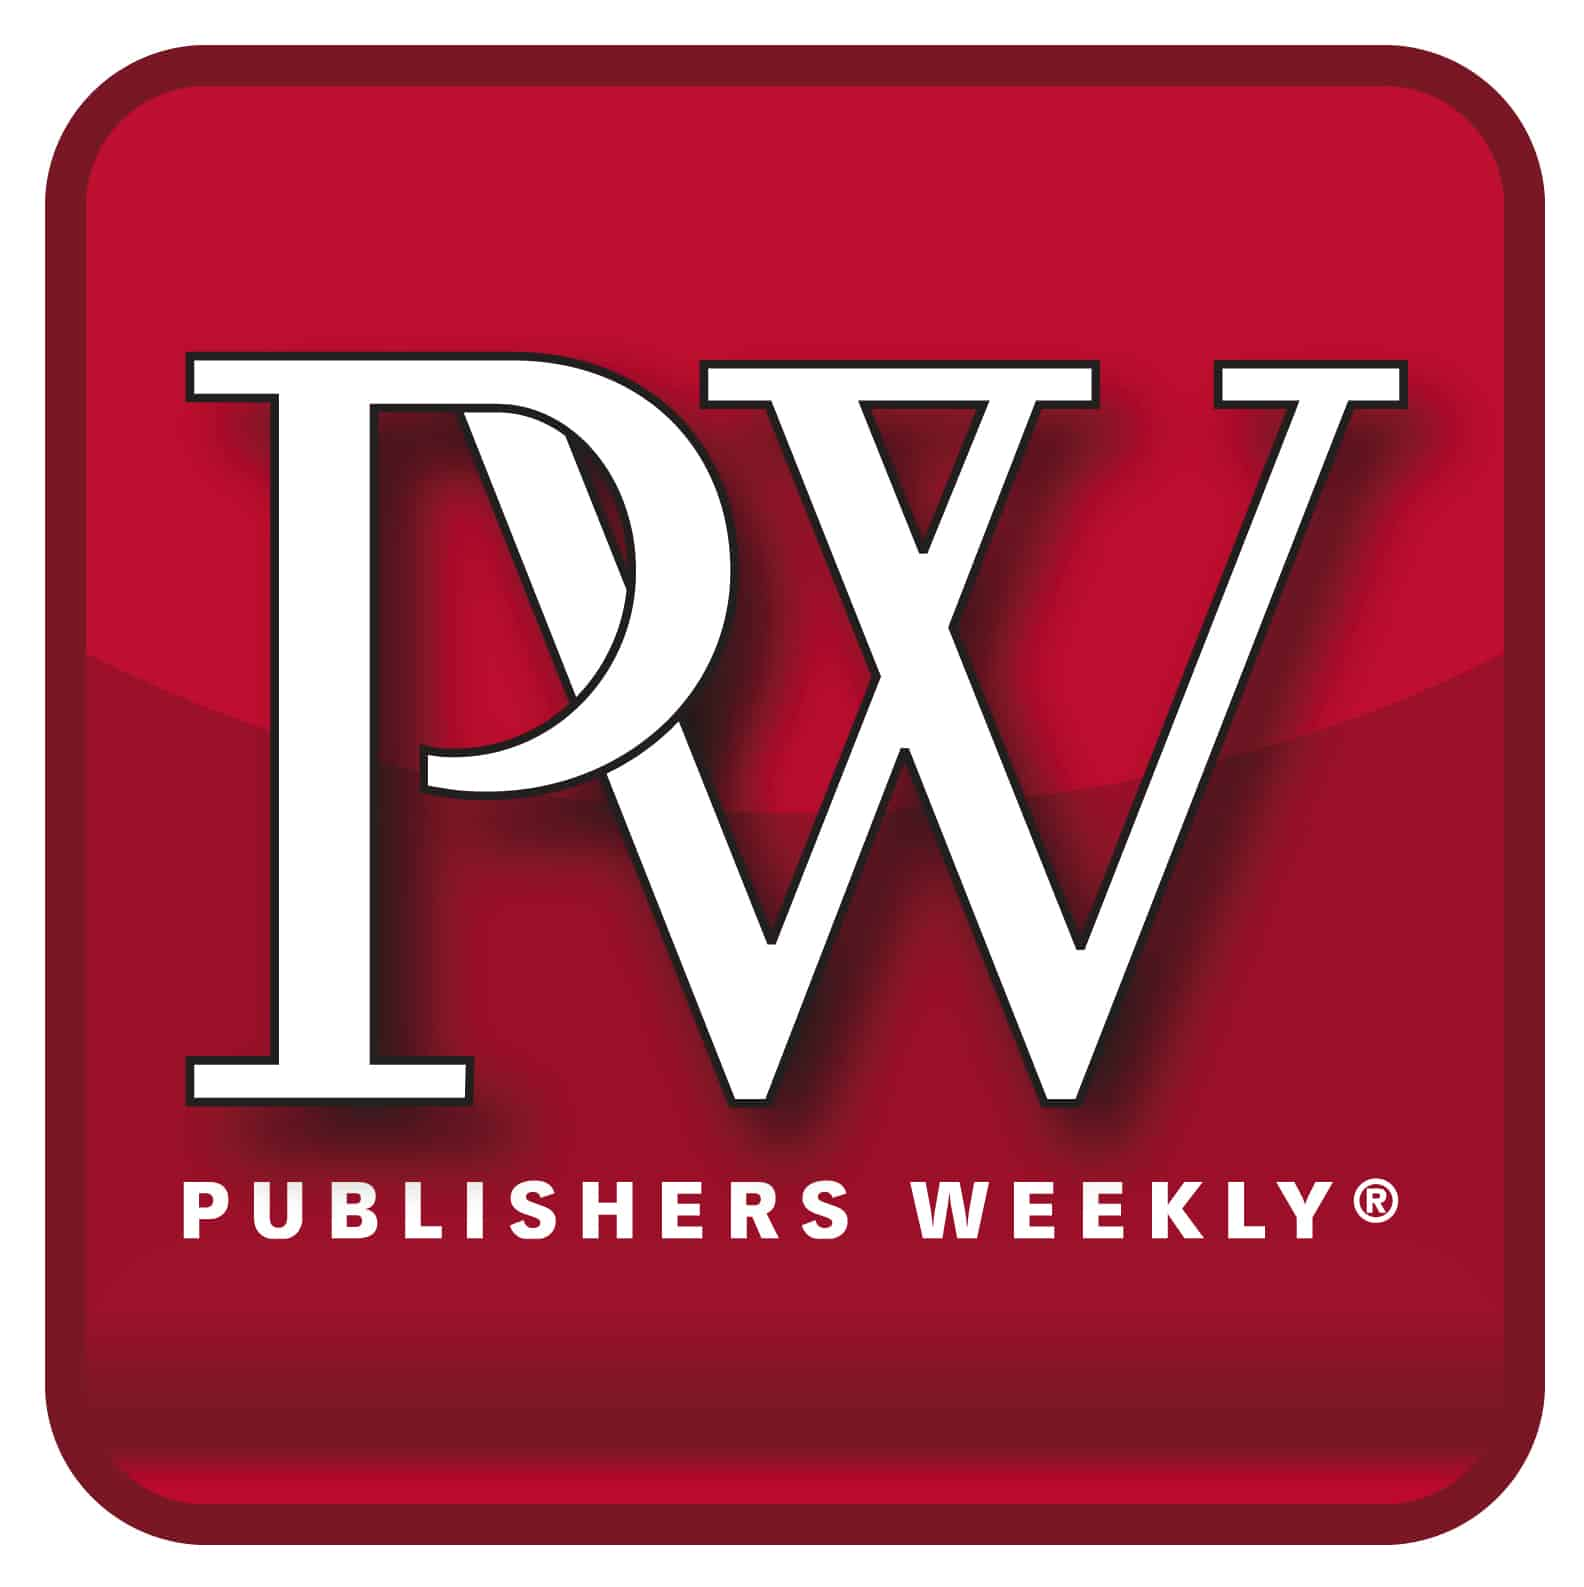 -Publisher's Weekly